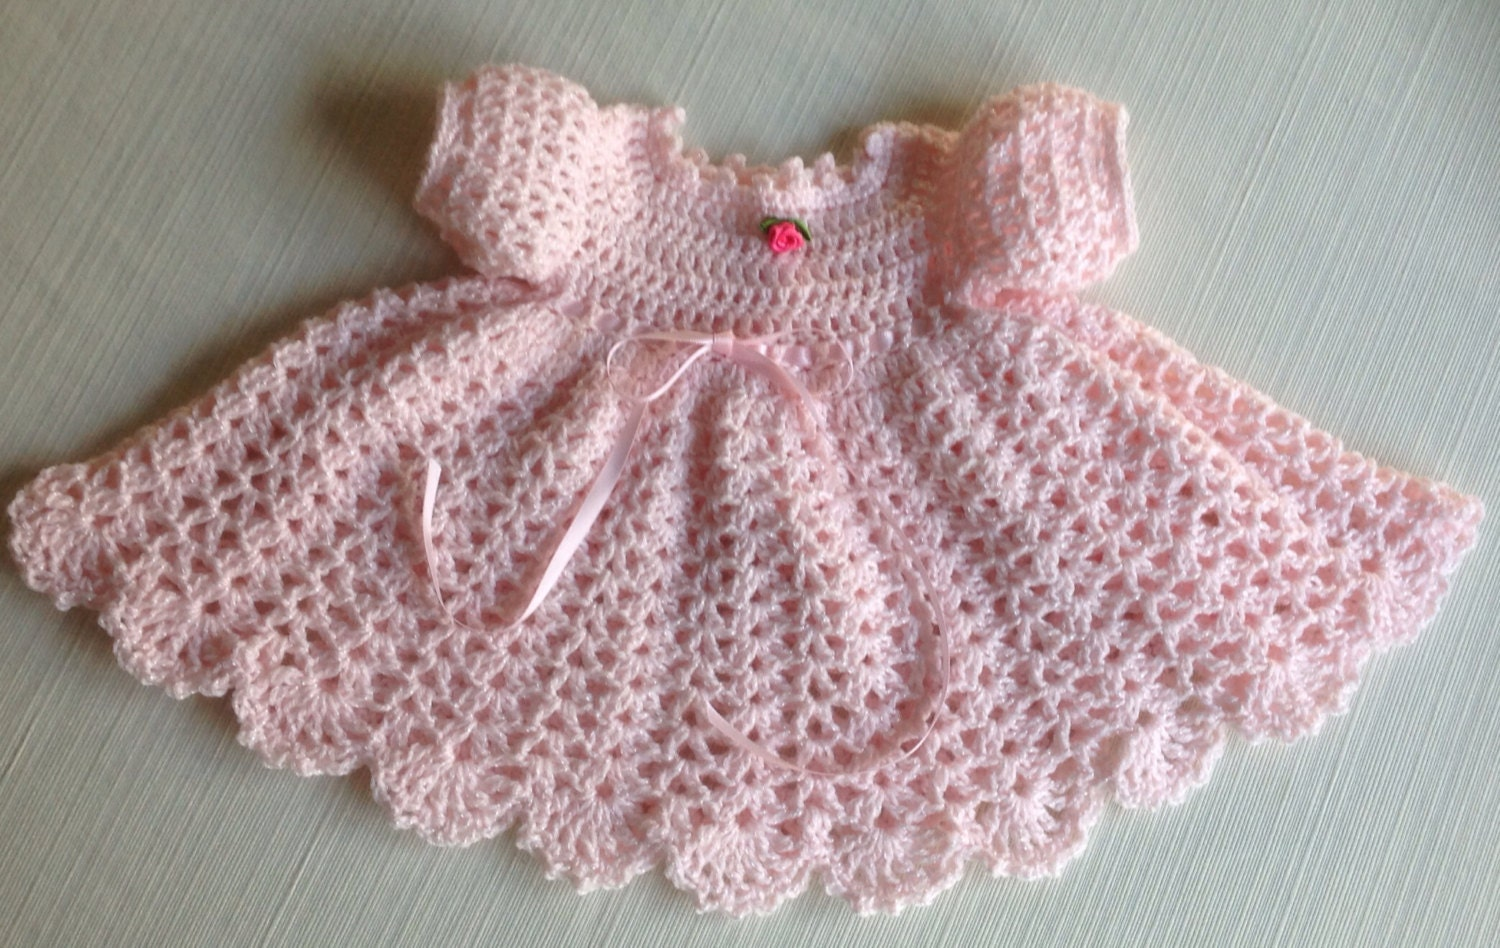 Crochet Baby Outfit Patterns : Newborn Crochet Baby Dress MARY PATTERN Updated Long sleeves